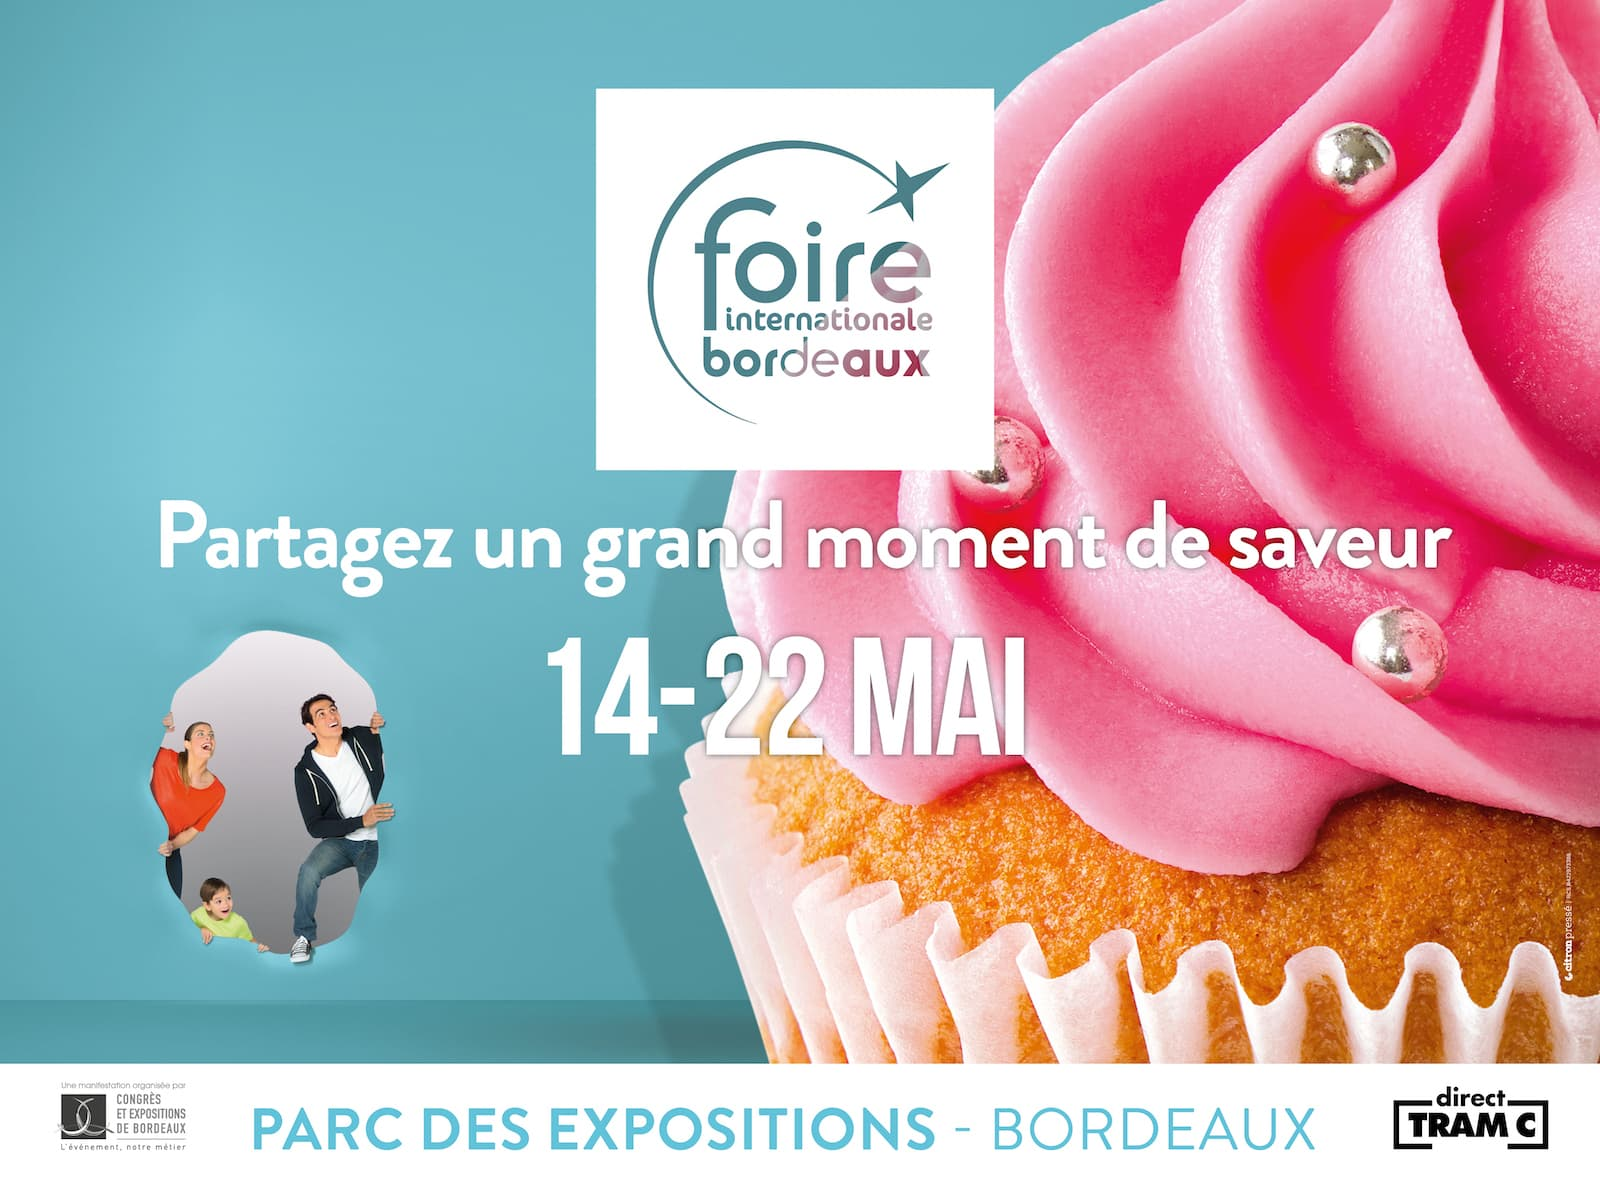 FOIRE INTERNATIONALE DE BORDEAUX